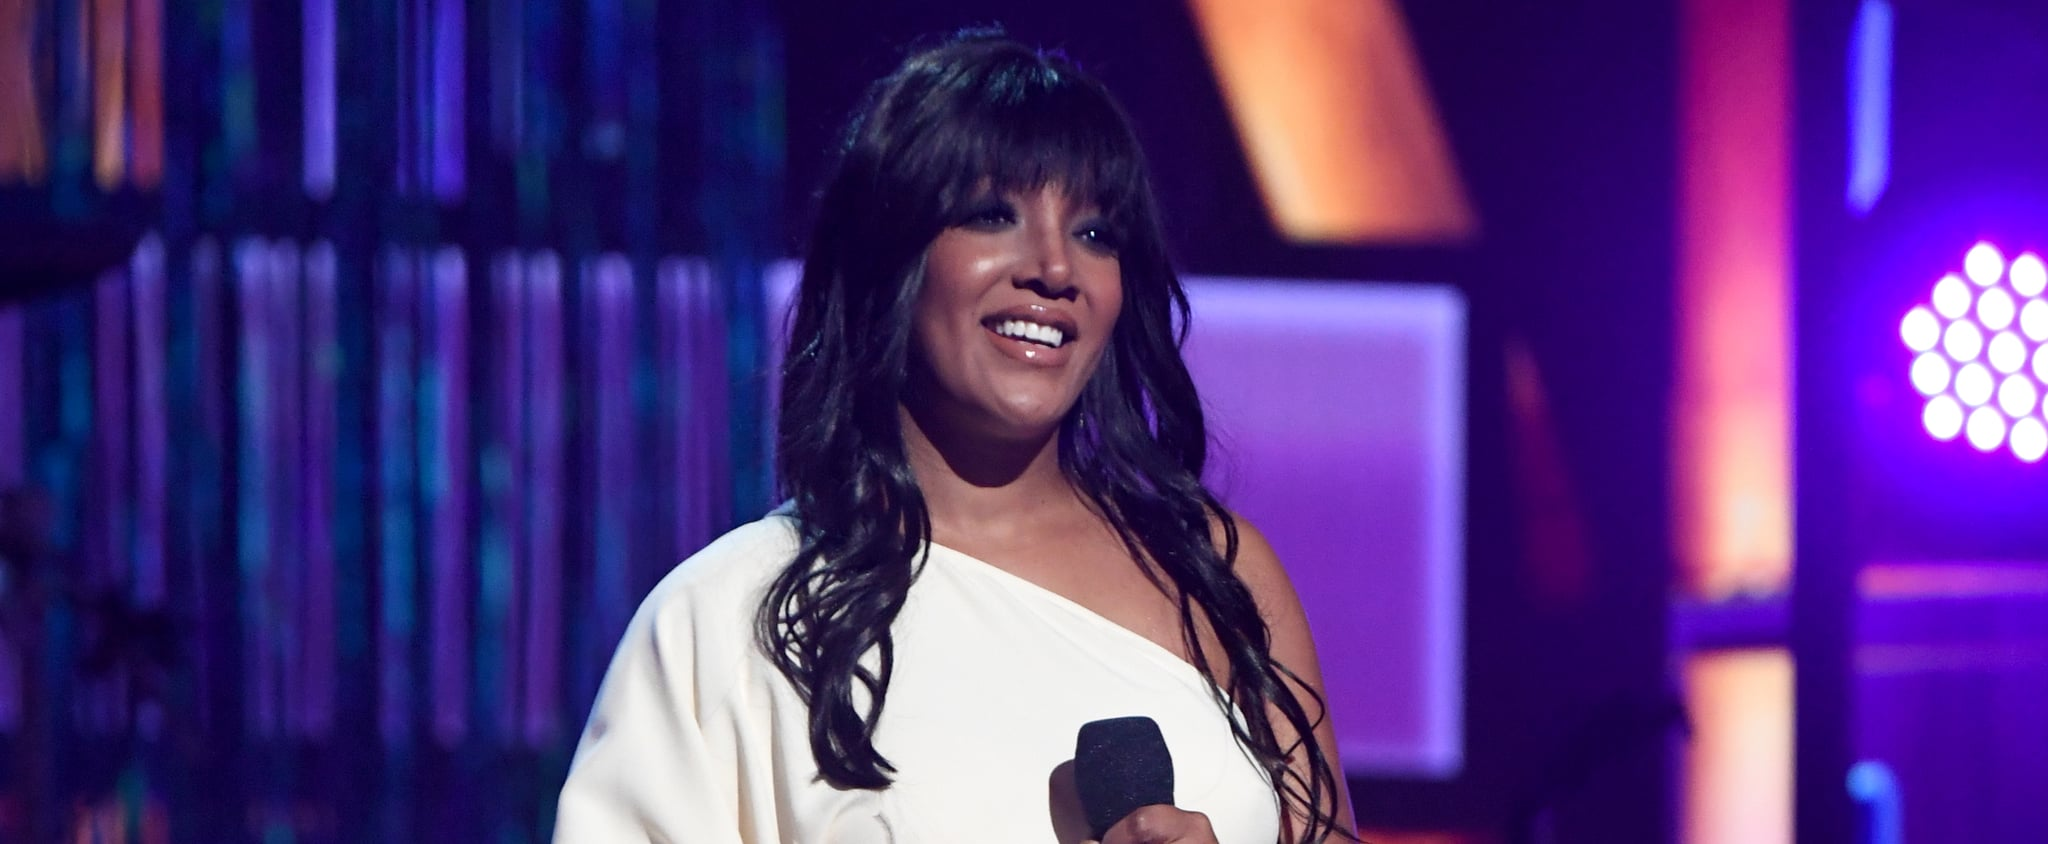 Mickey Guyton at the 2021 ACM Awards | Pictures